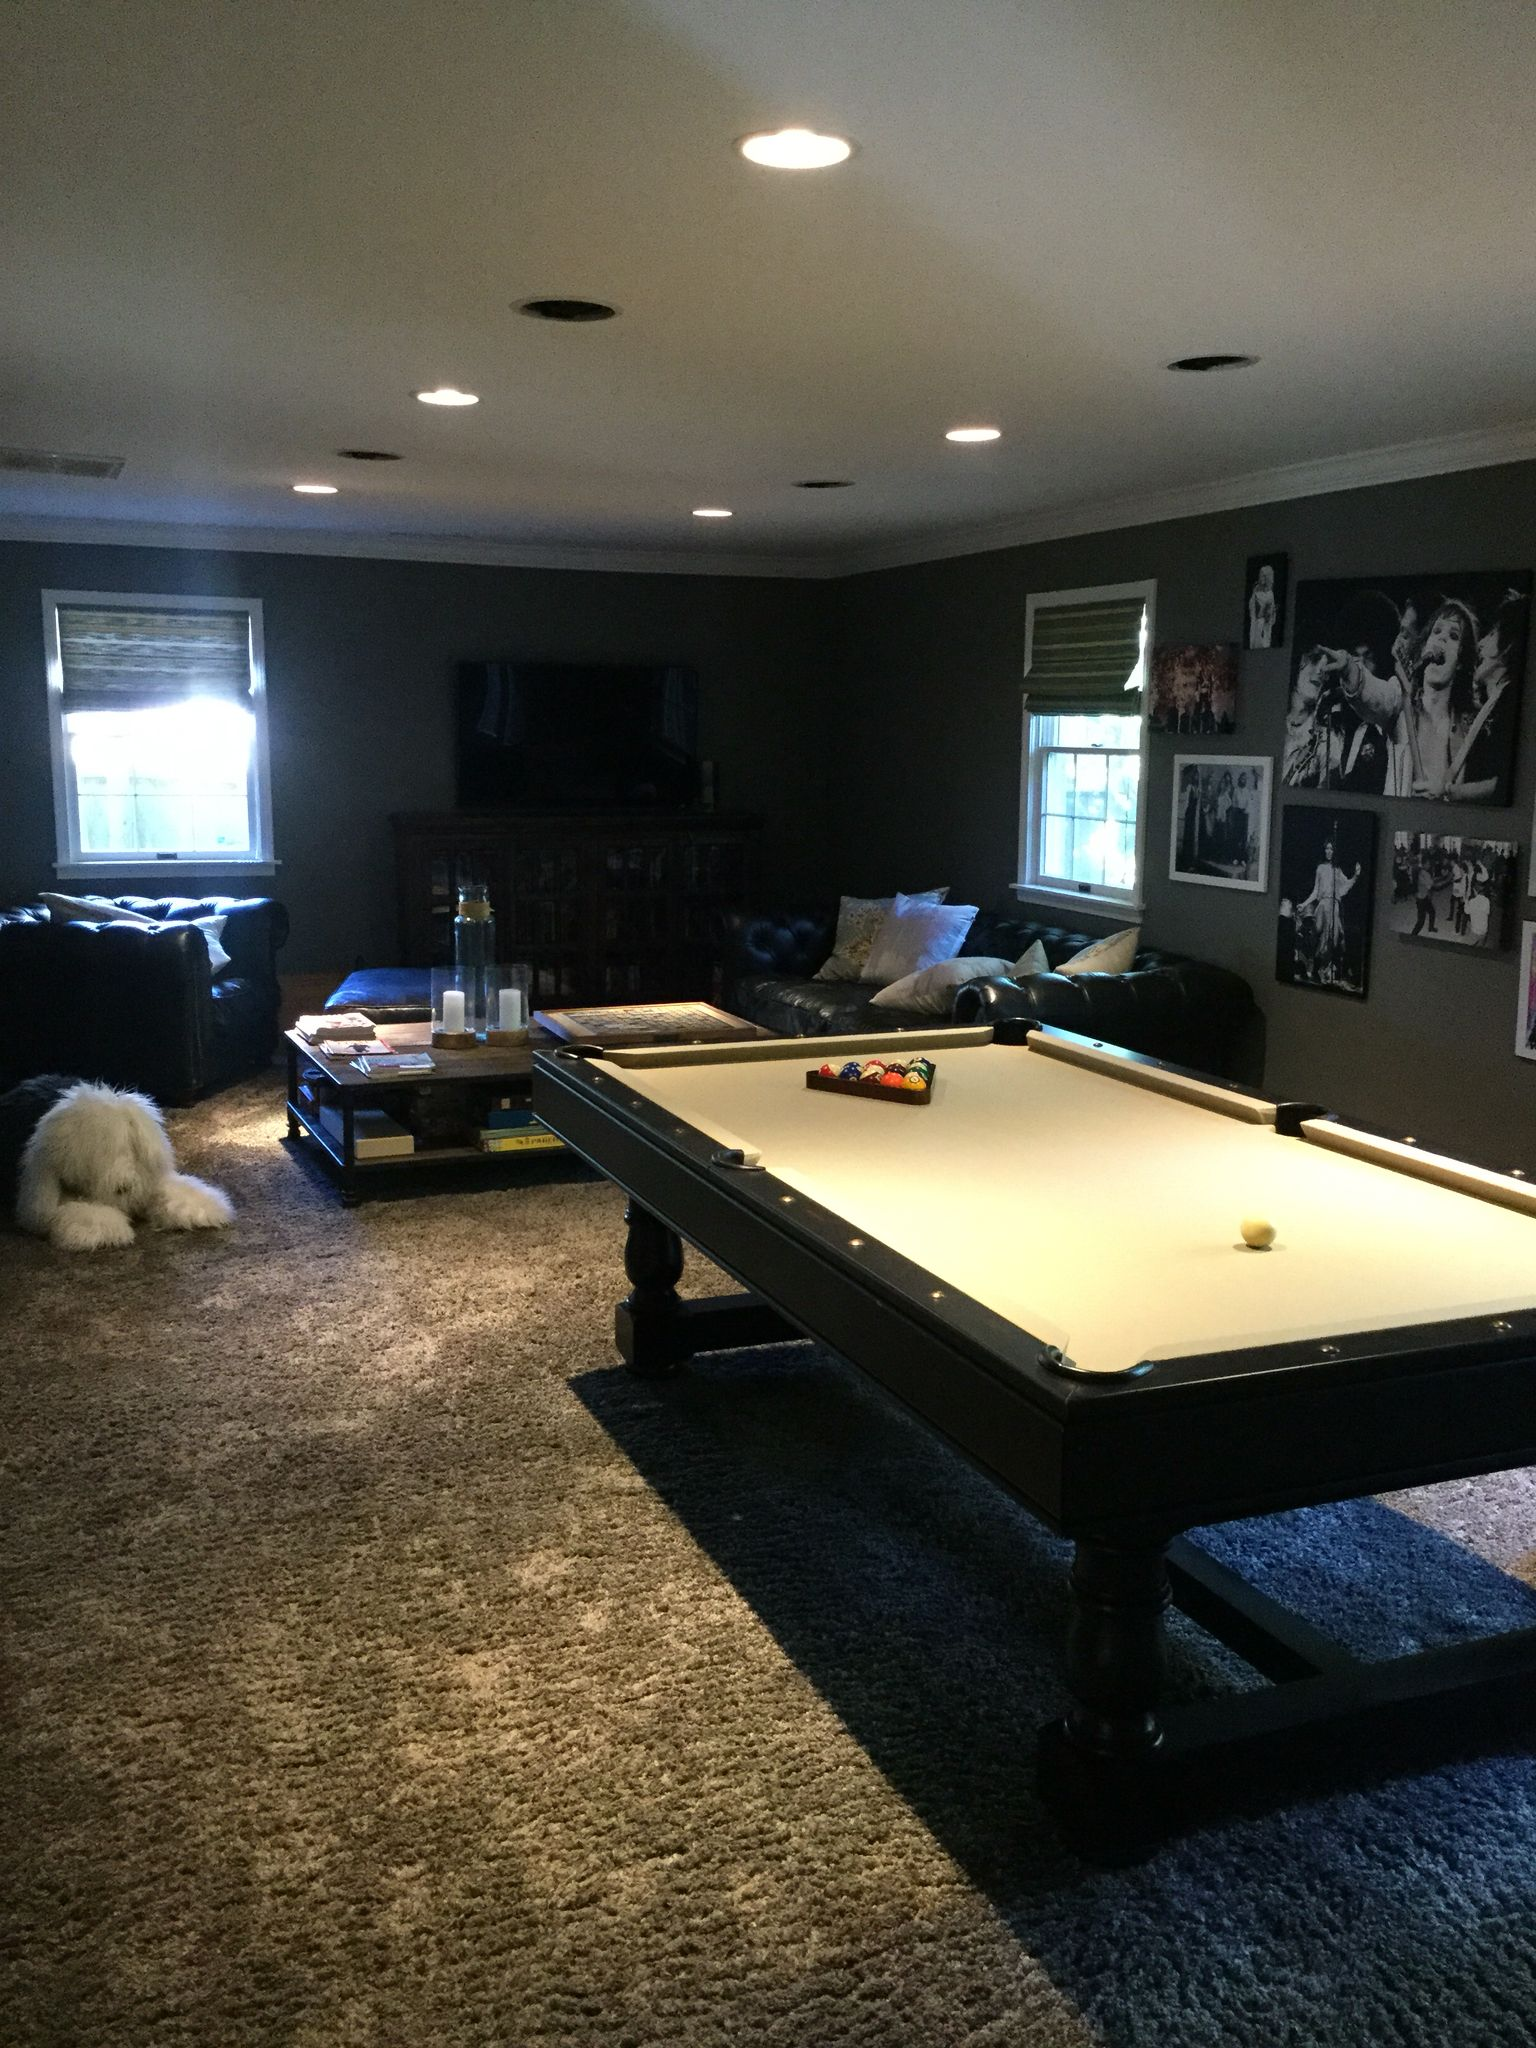 Game room We painted dark graphite on walls and added this retro